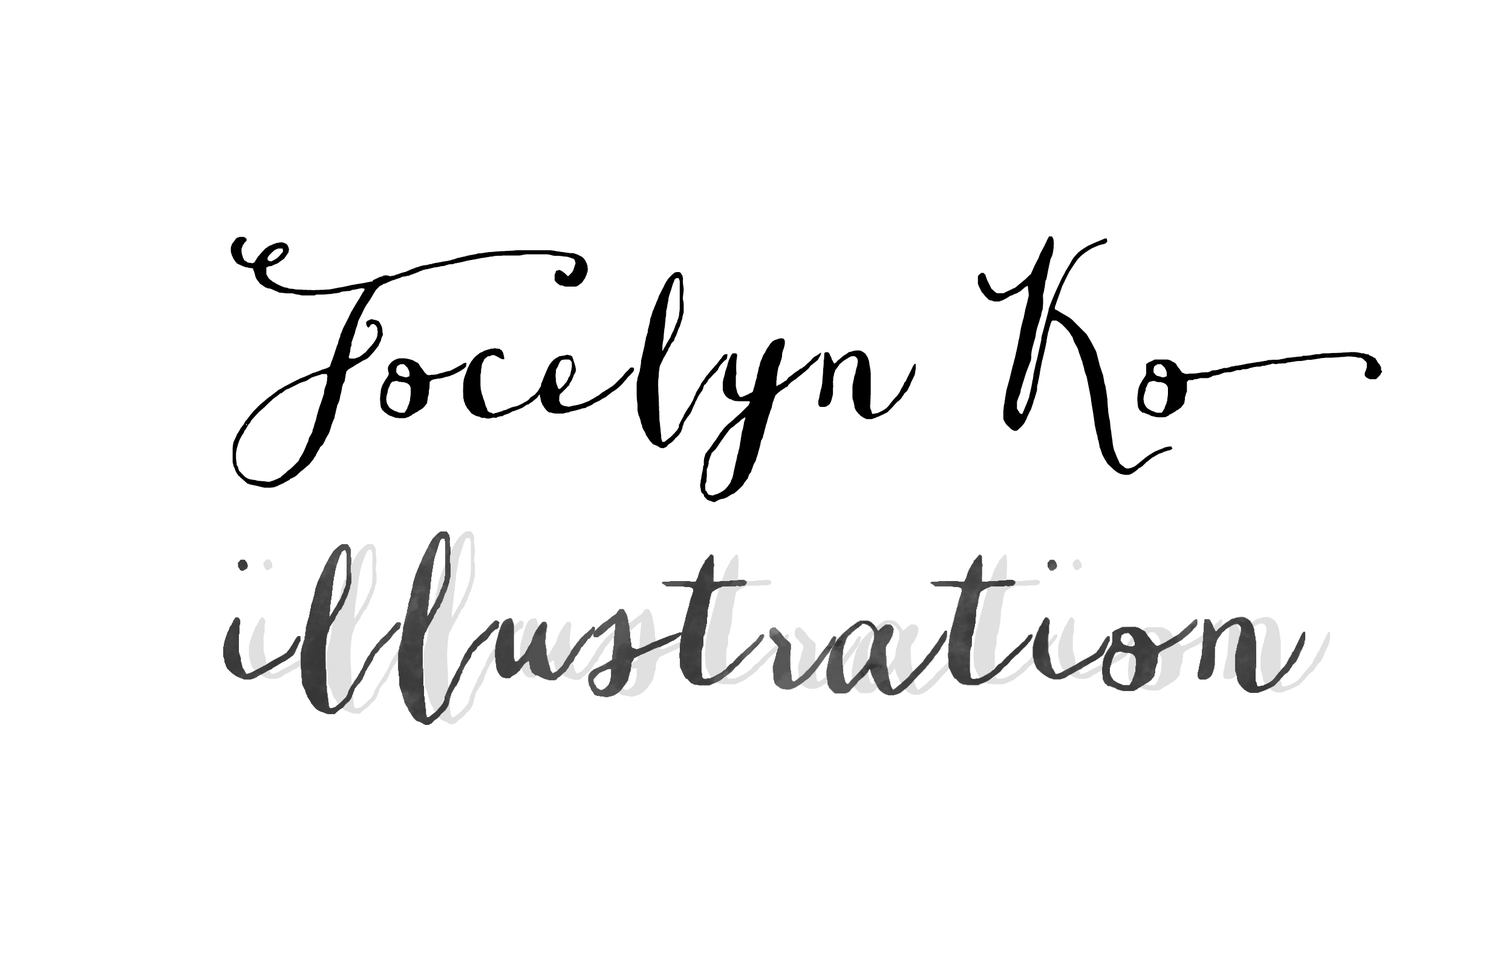 Jocelyn Ko illustration - Customized Illustration Services